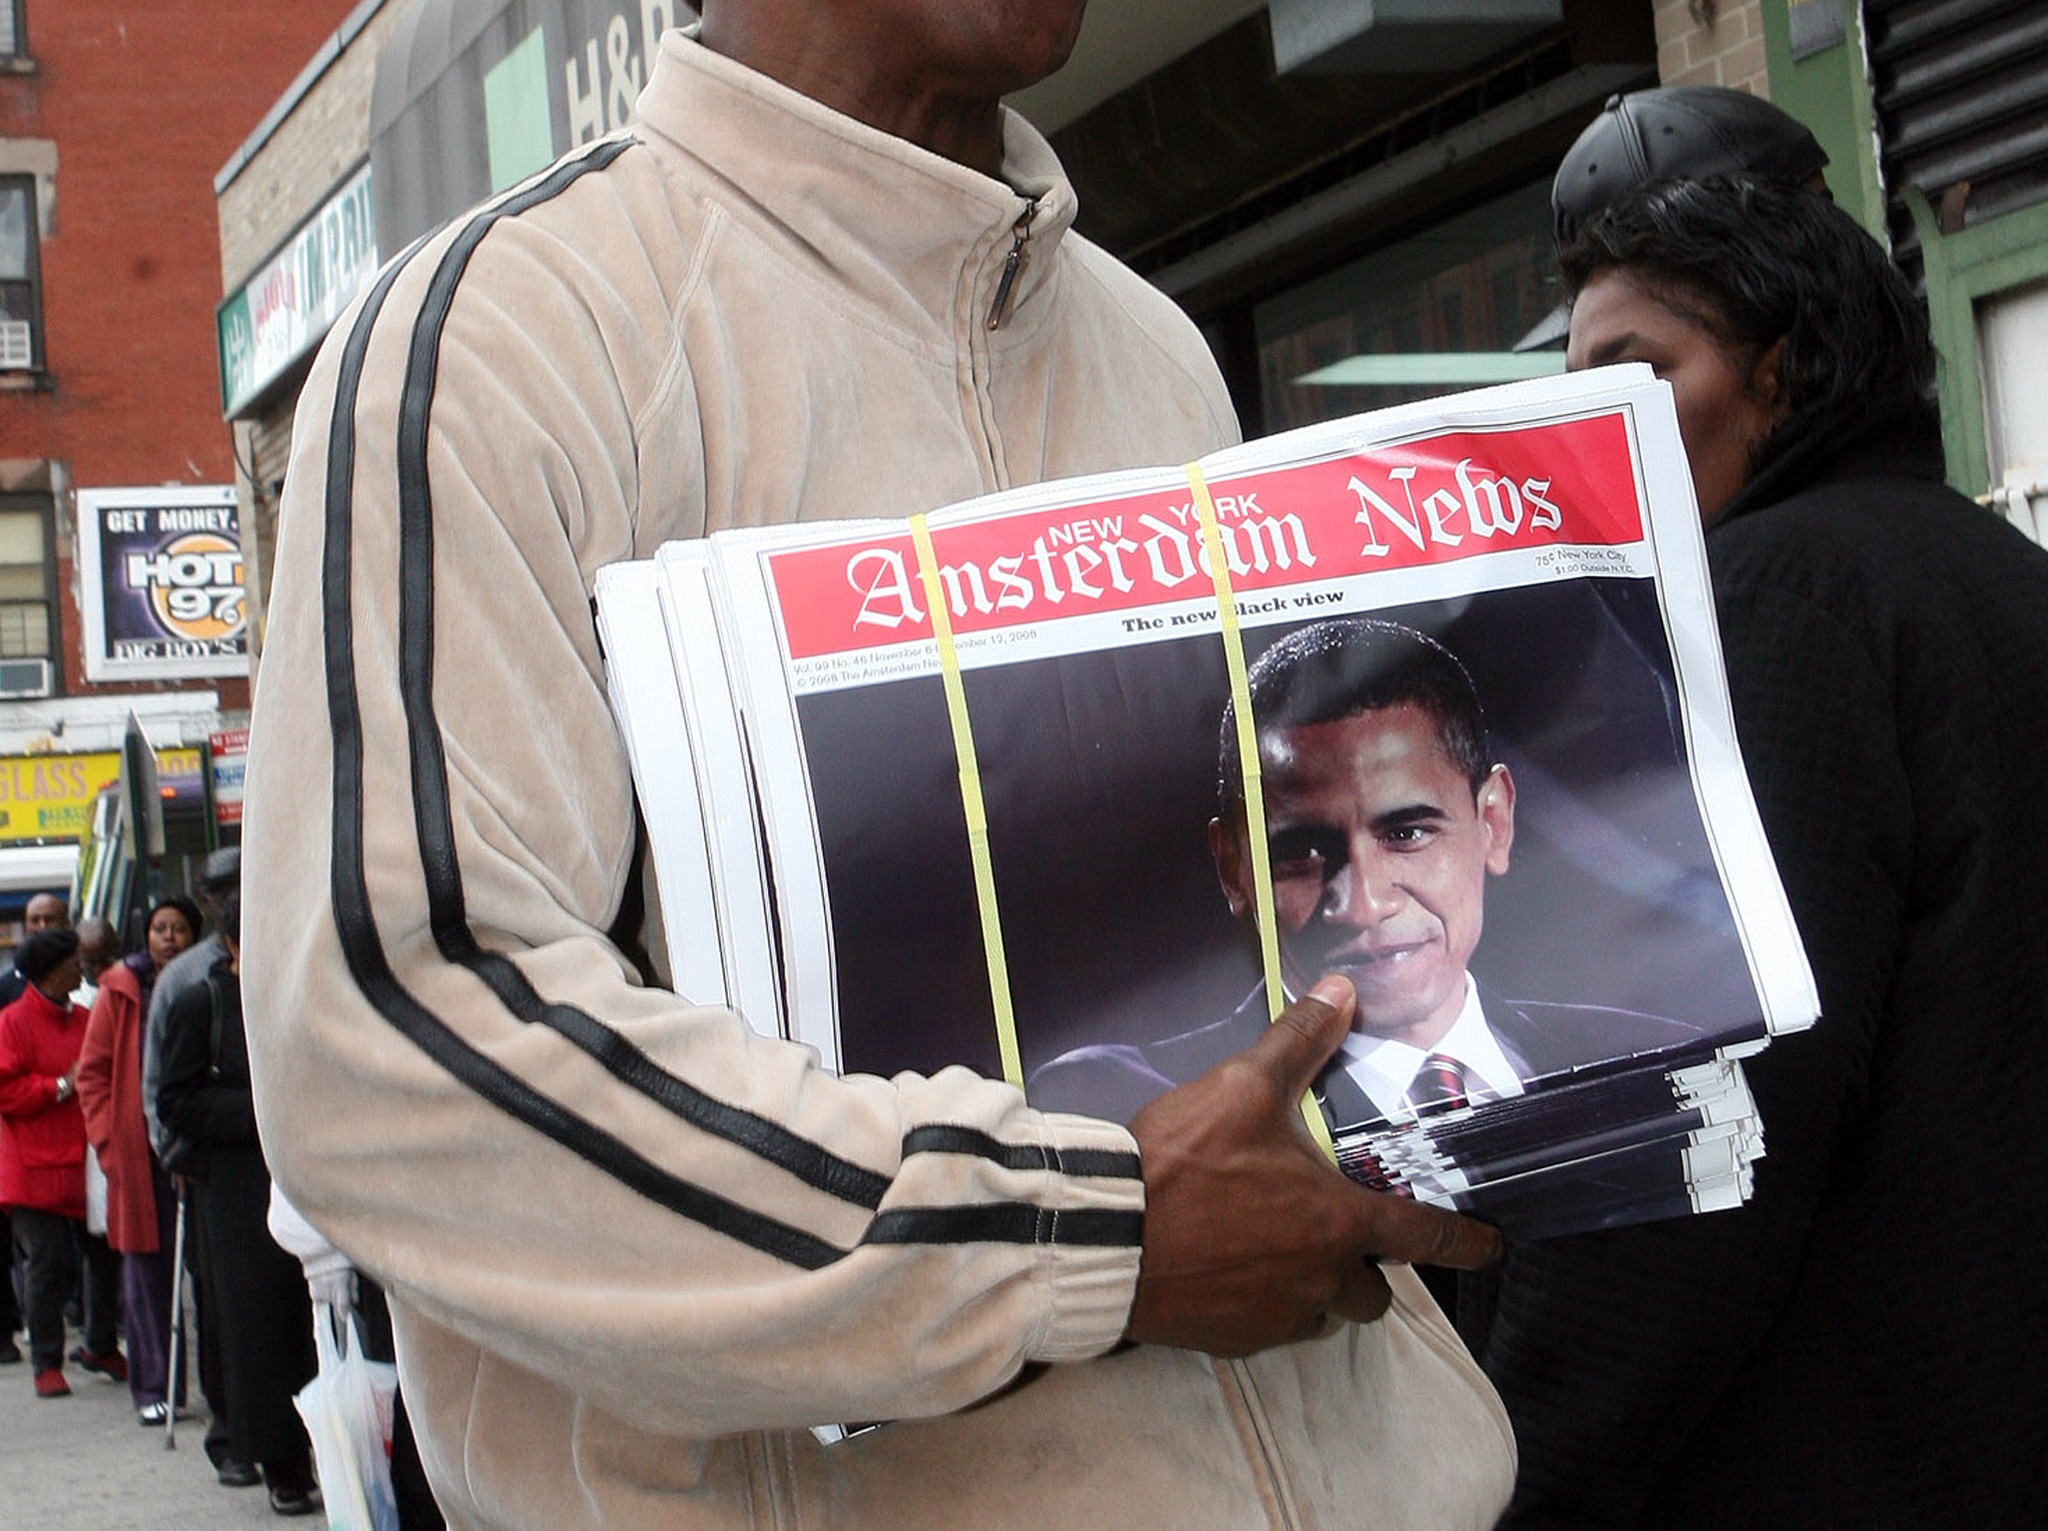 The press is in economic jeopardy, and black Americans should especially wo...